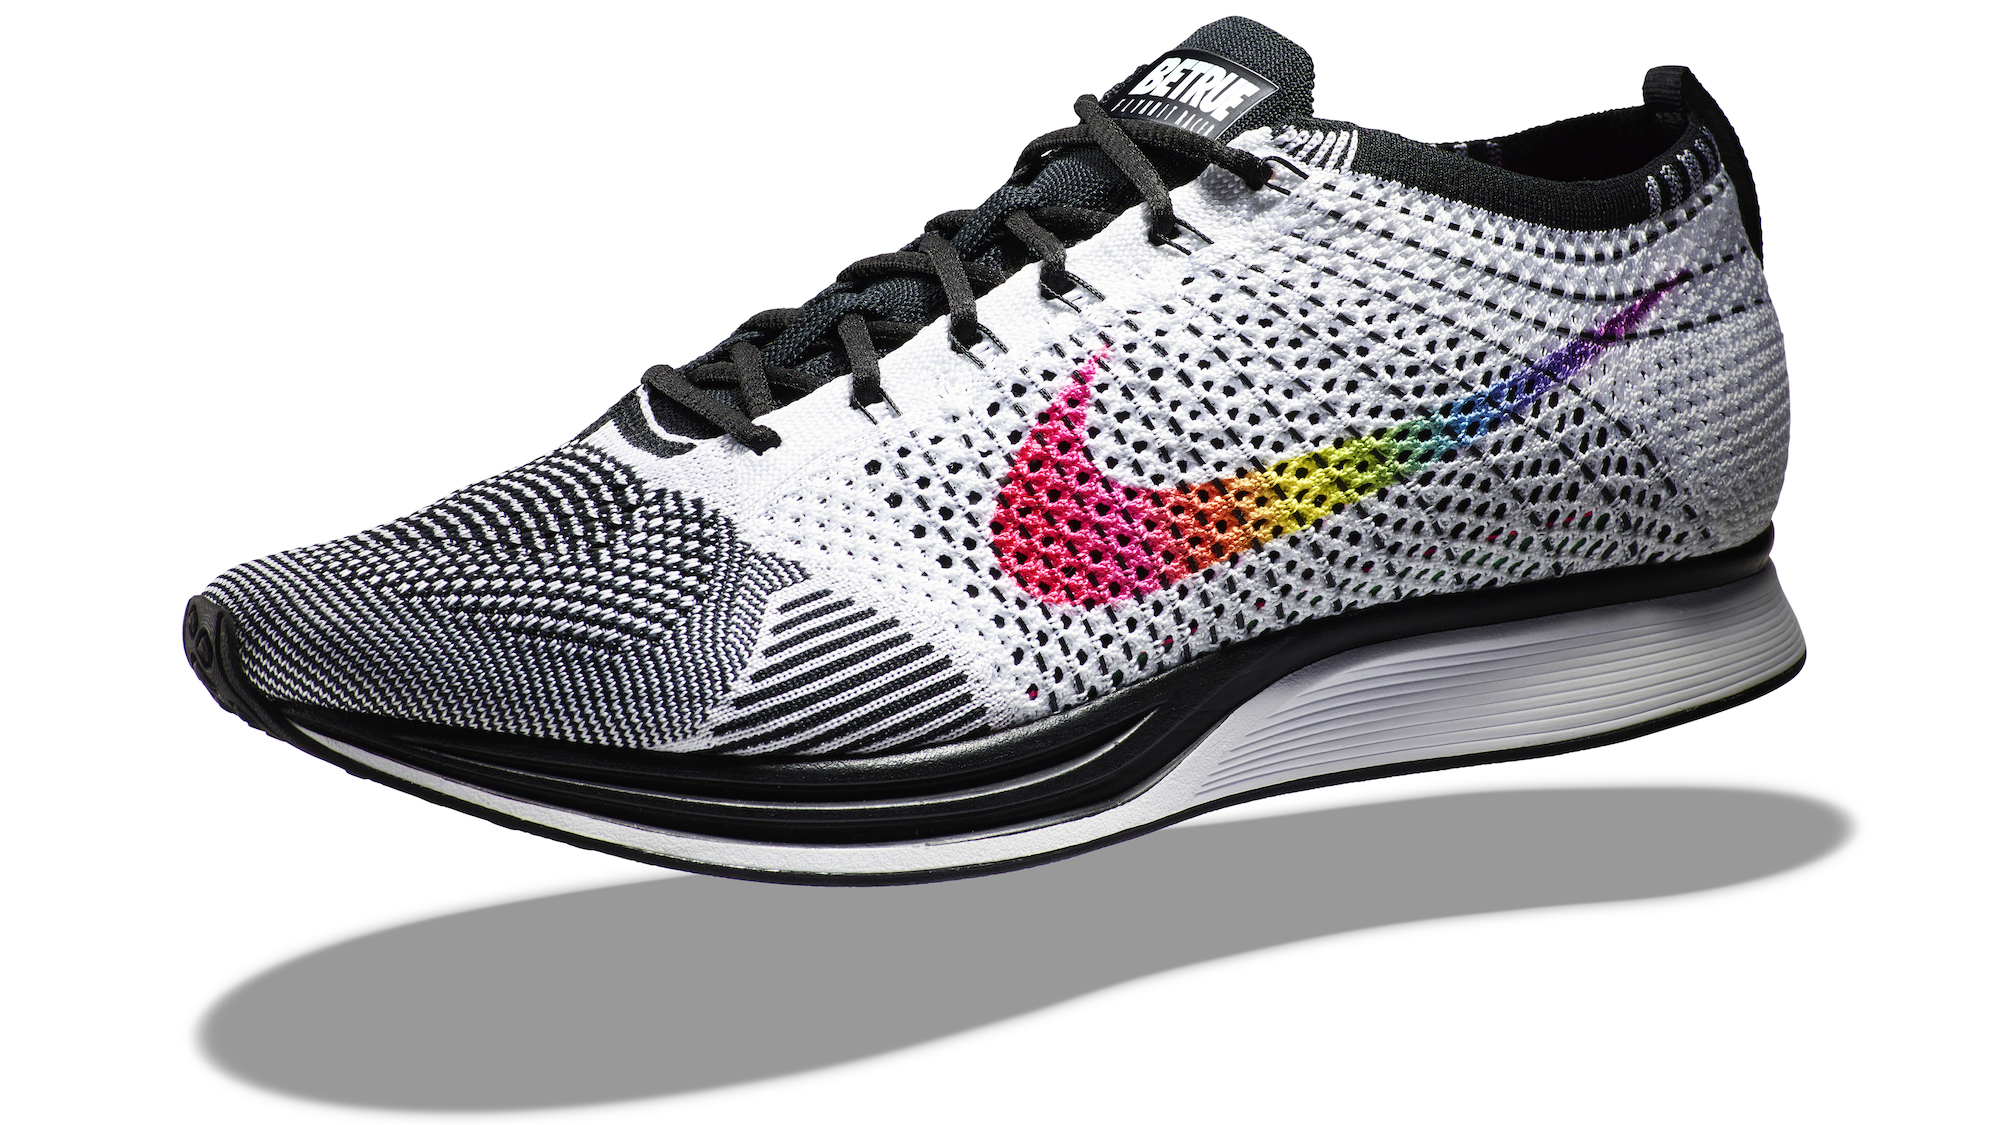 Nike Betrue Running Shoes